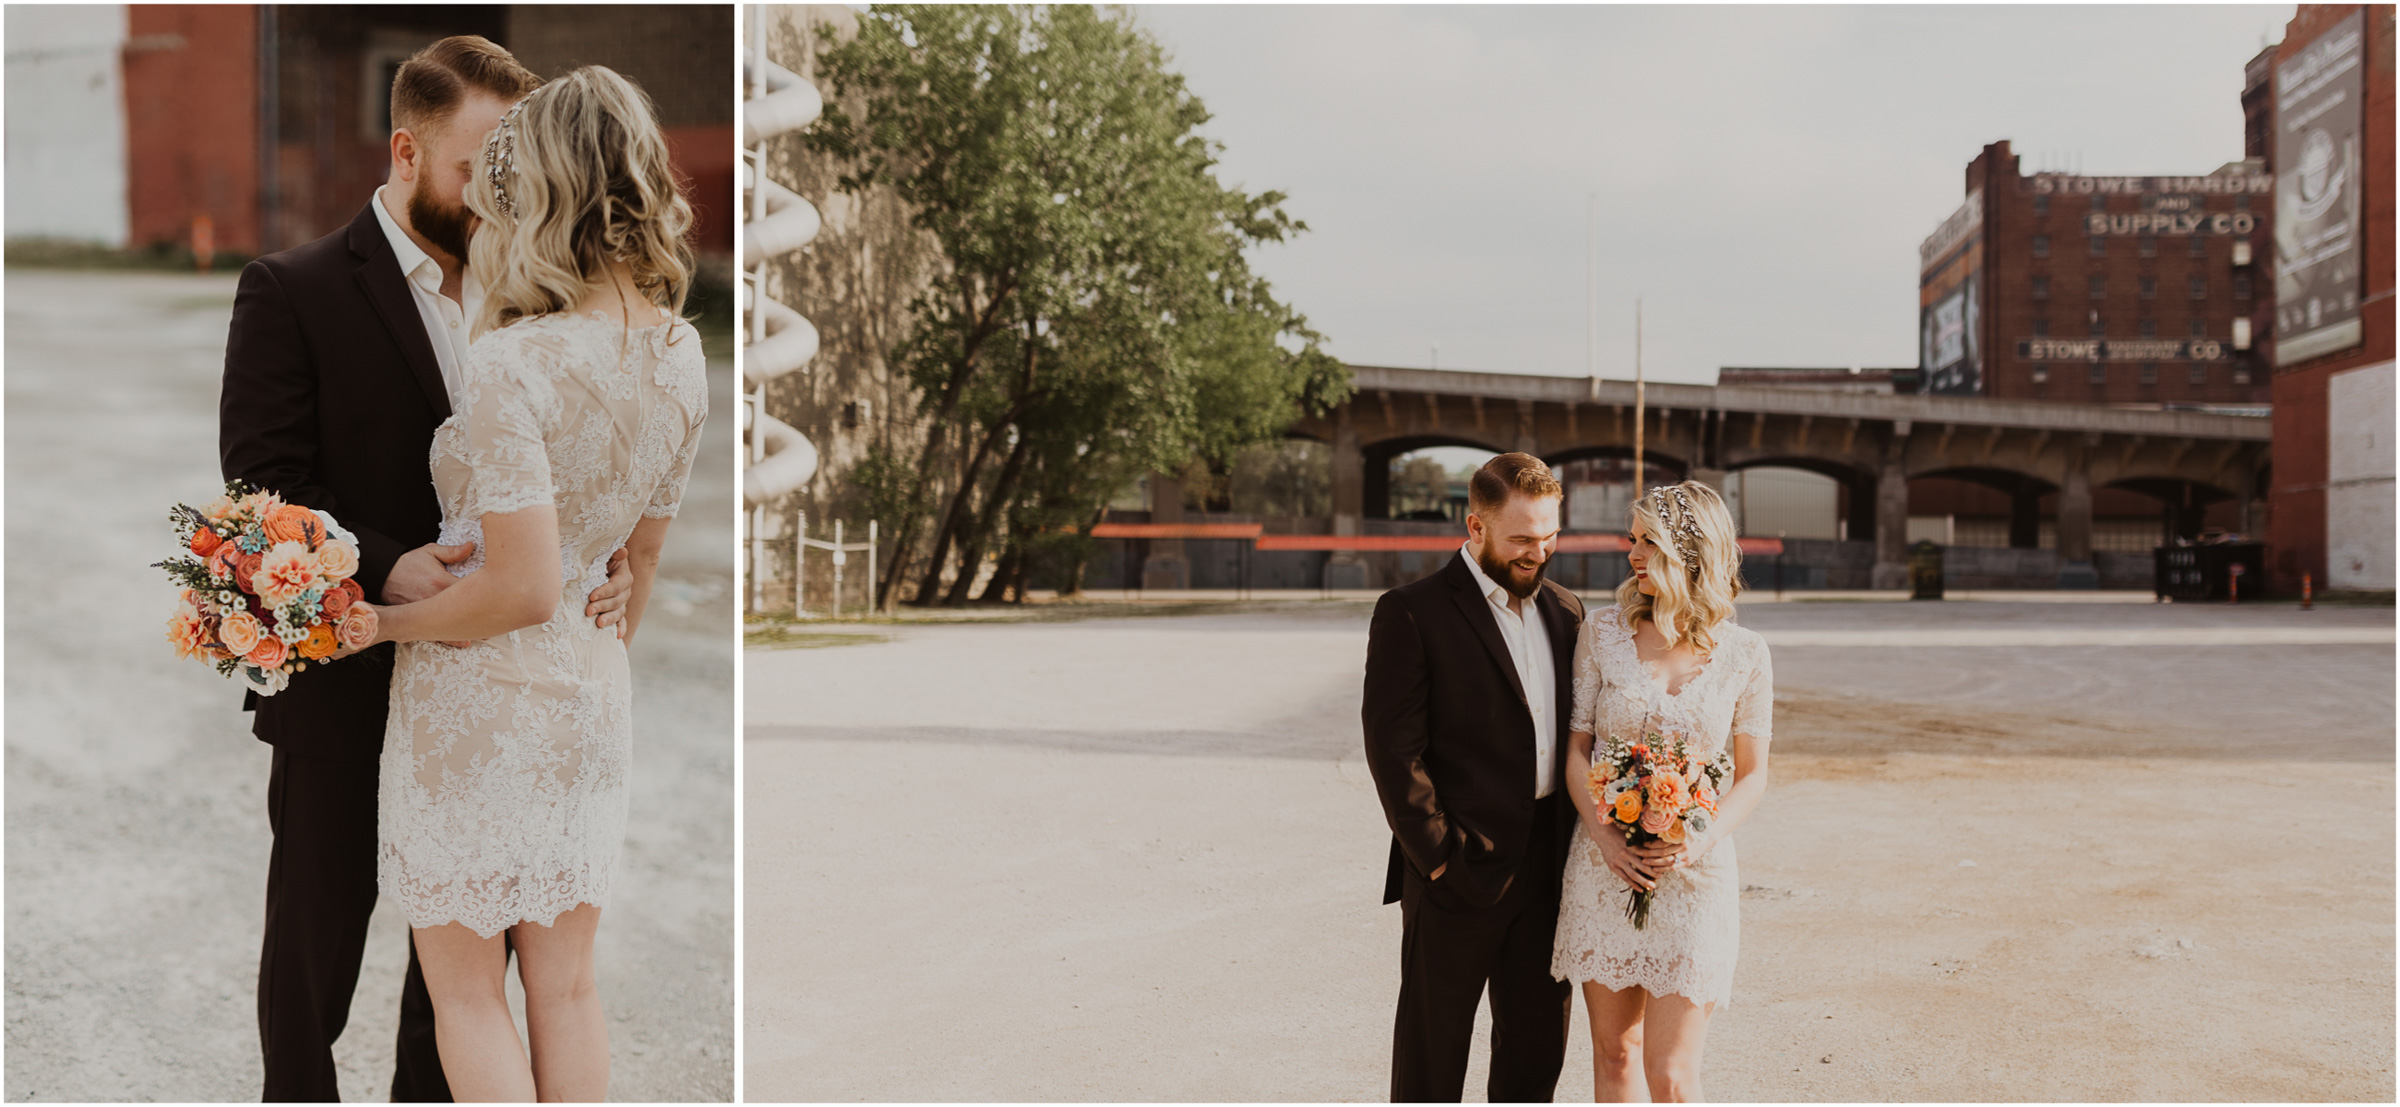 alyssa barletter photography styled shoot wedding inspiration kansas city west bottoms photographer motorcycle edgy intimate-36.jpg